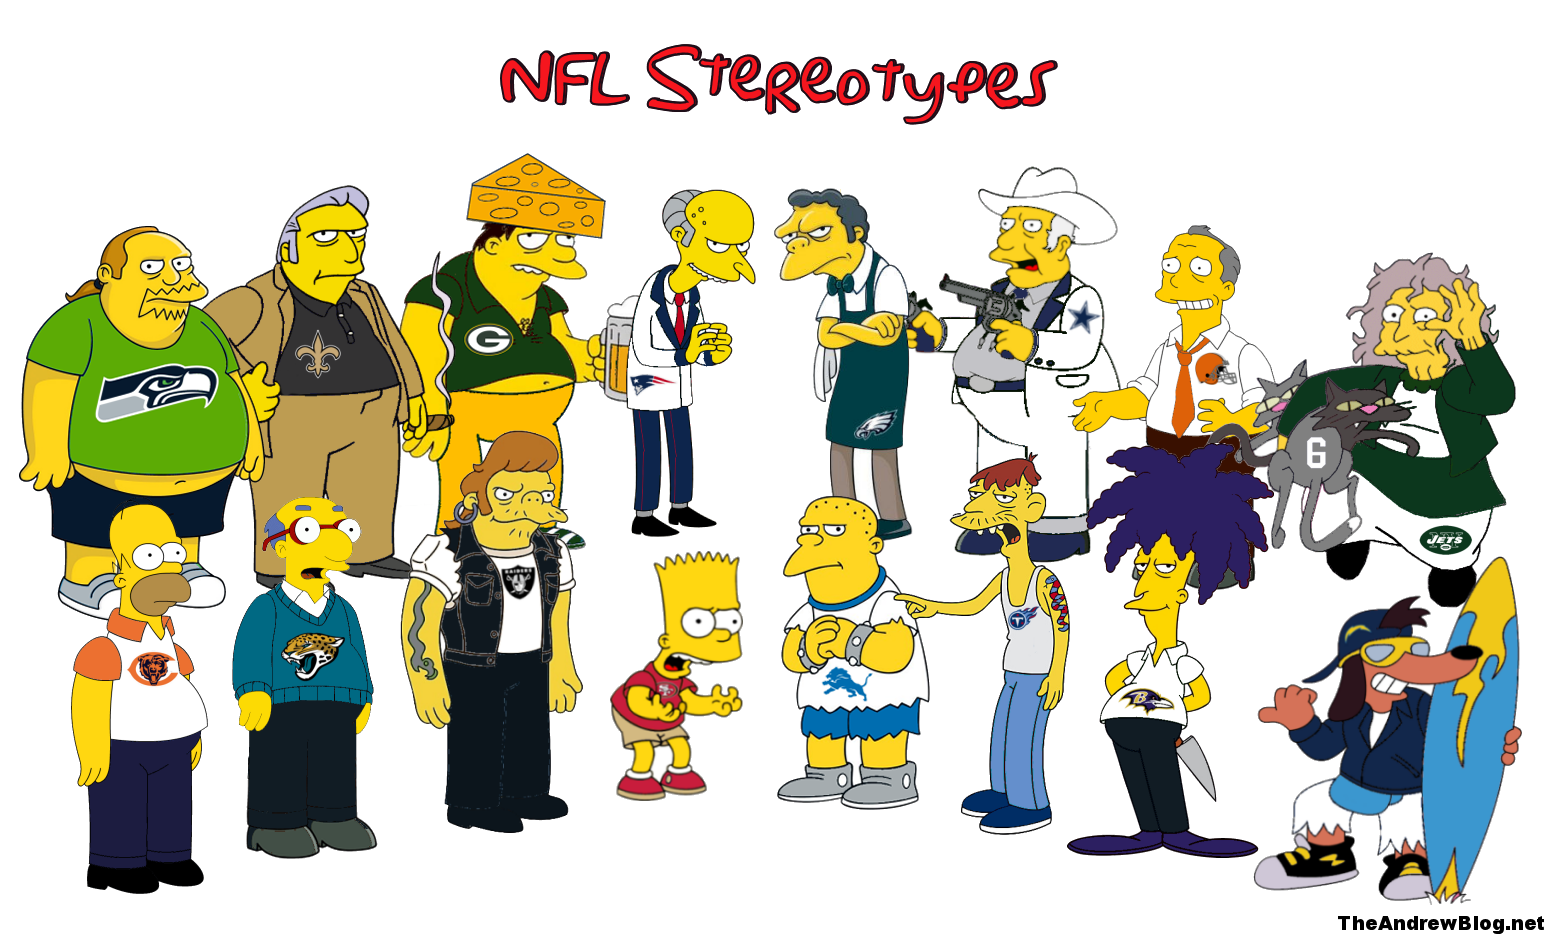 Simpsons Nfl Stereotypes Final